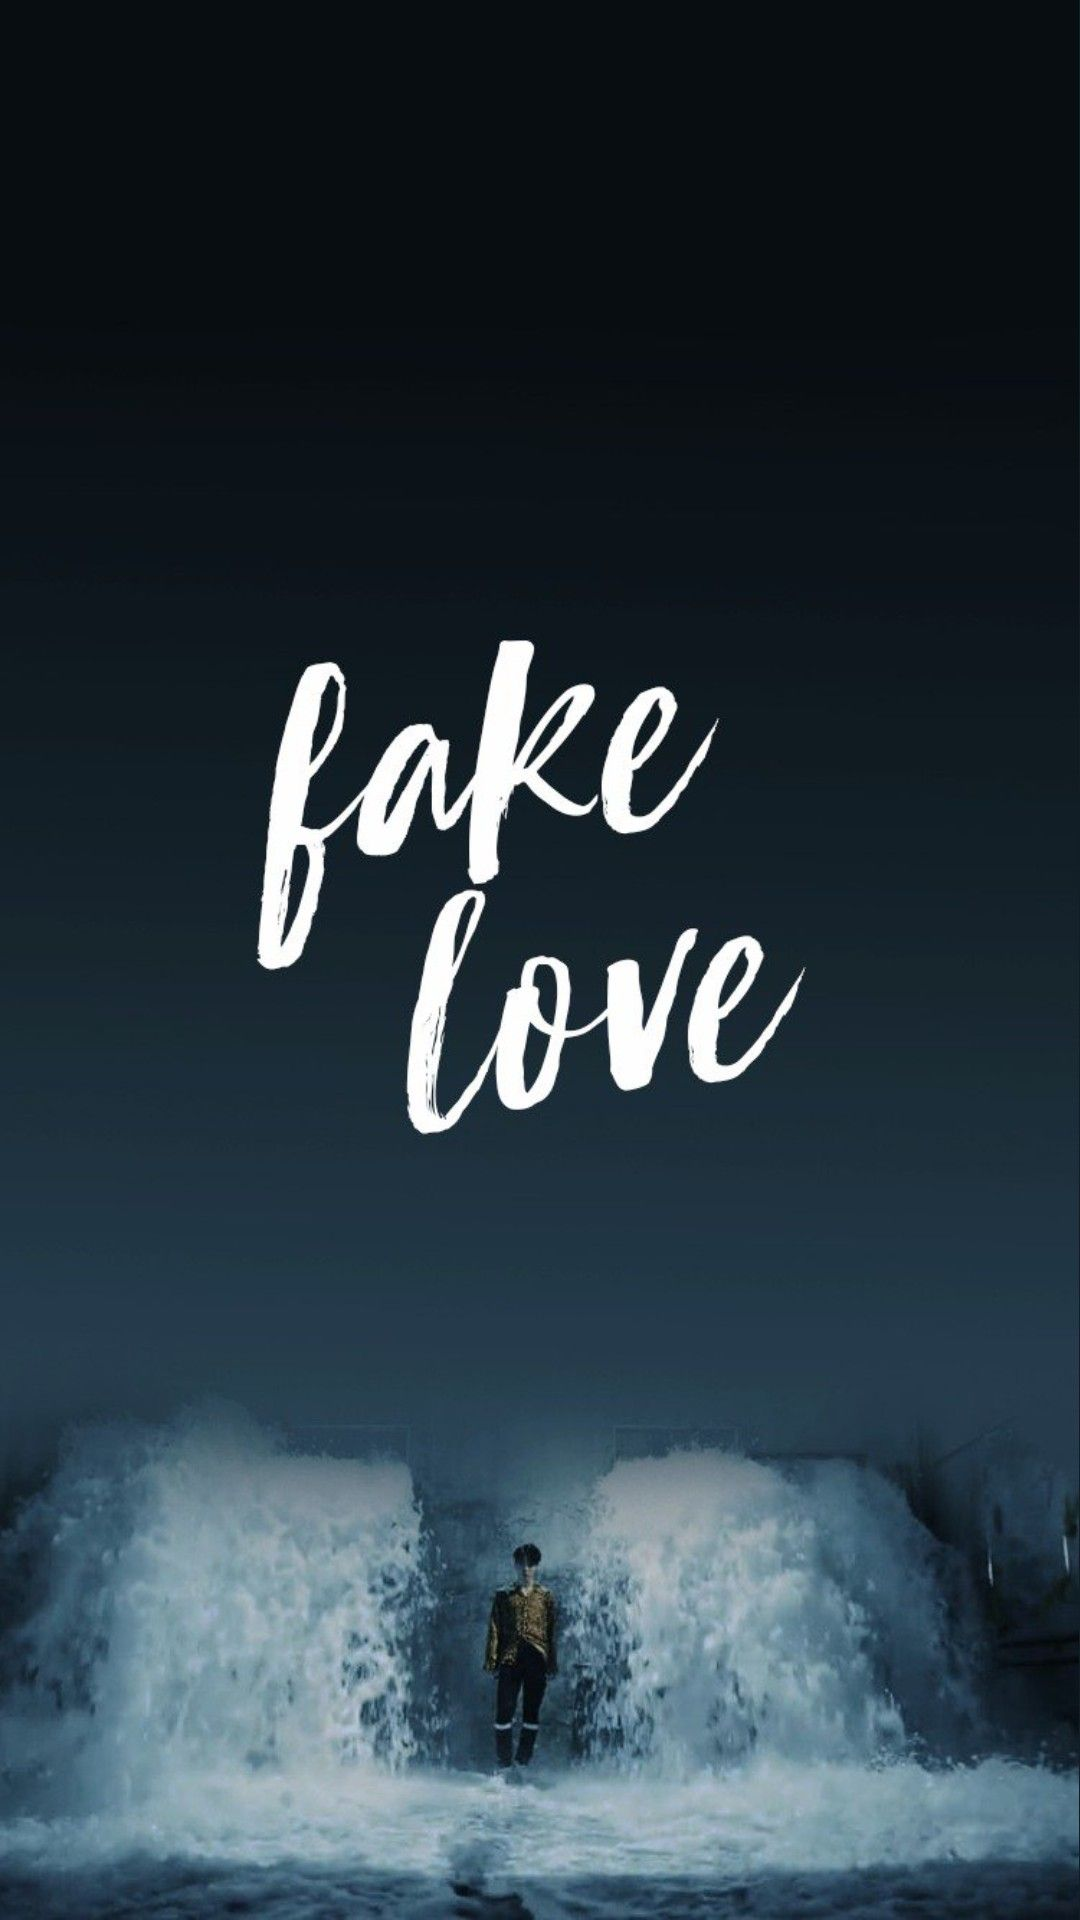 Bts Fake Love Wallpapers Top Free Bts Fake Love Backgrounds